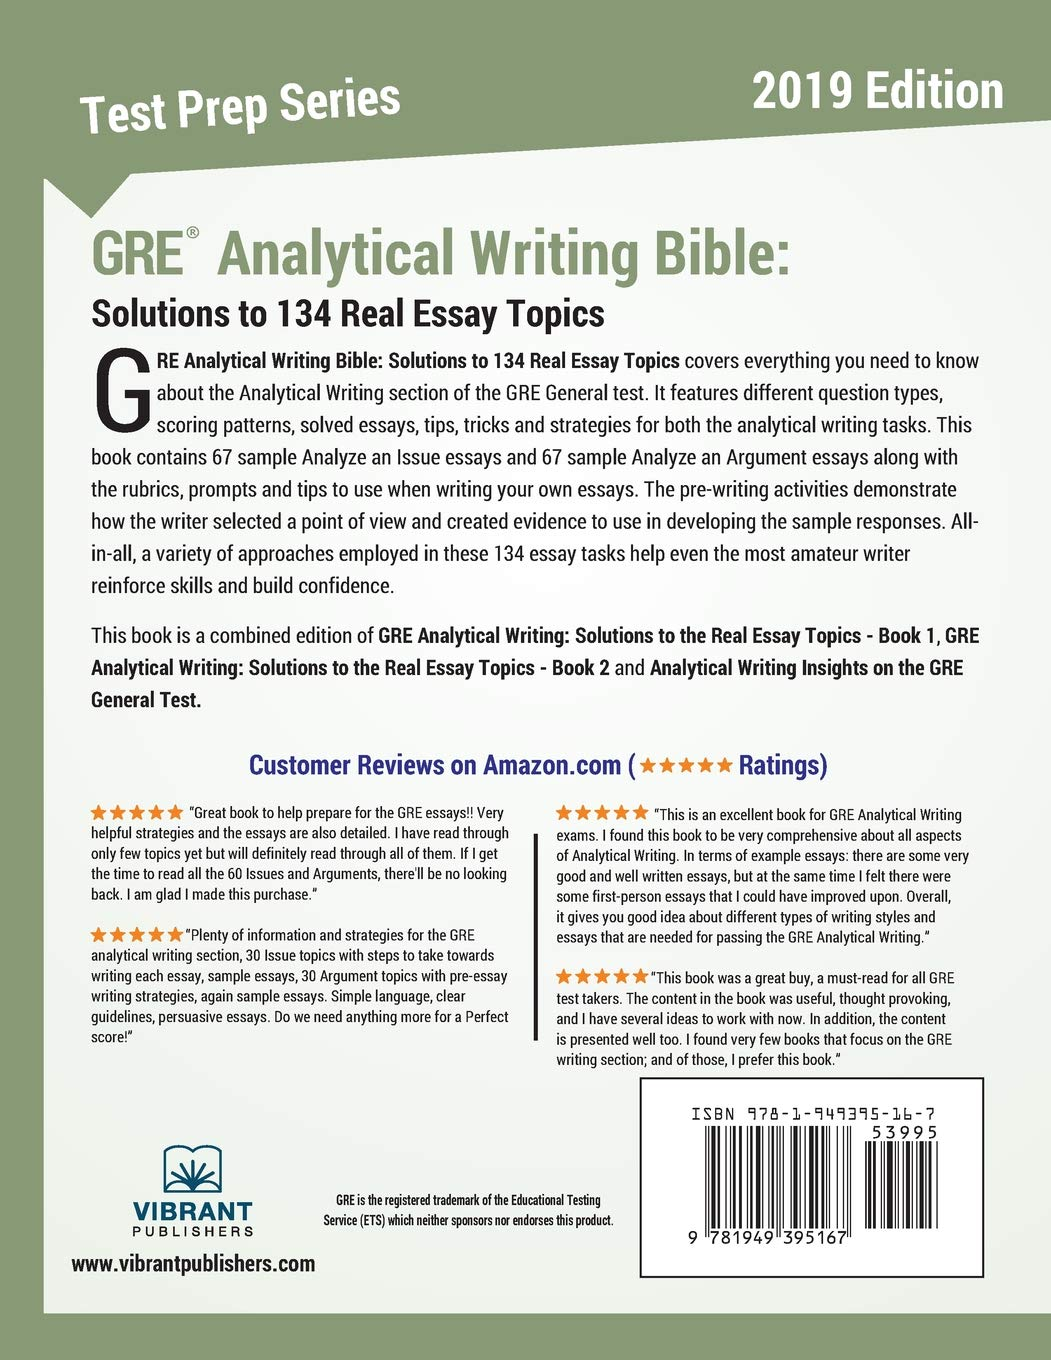 GRE Analytical Writing Bible Solutions To 134 Real Essay